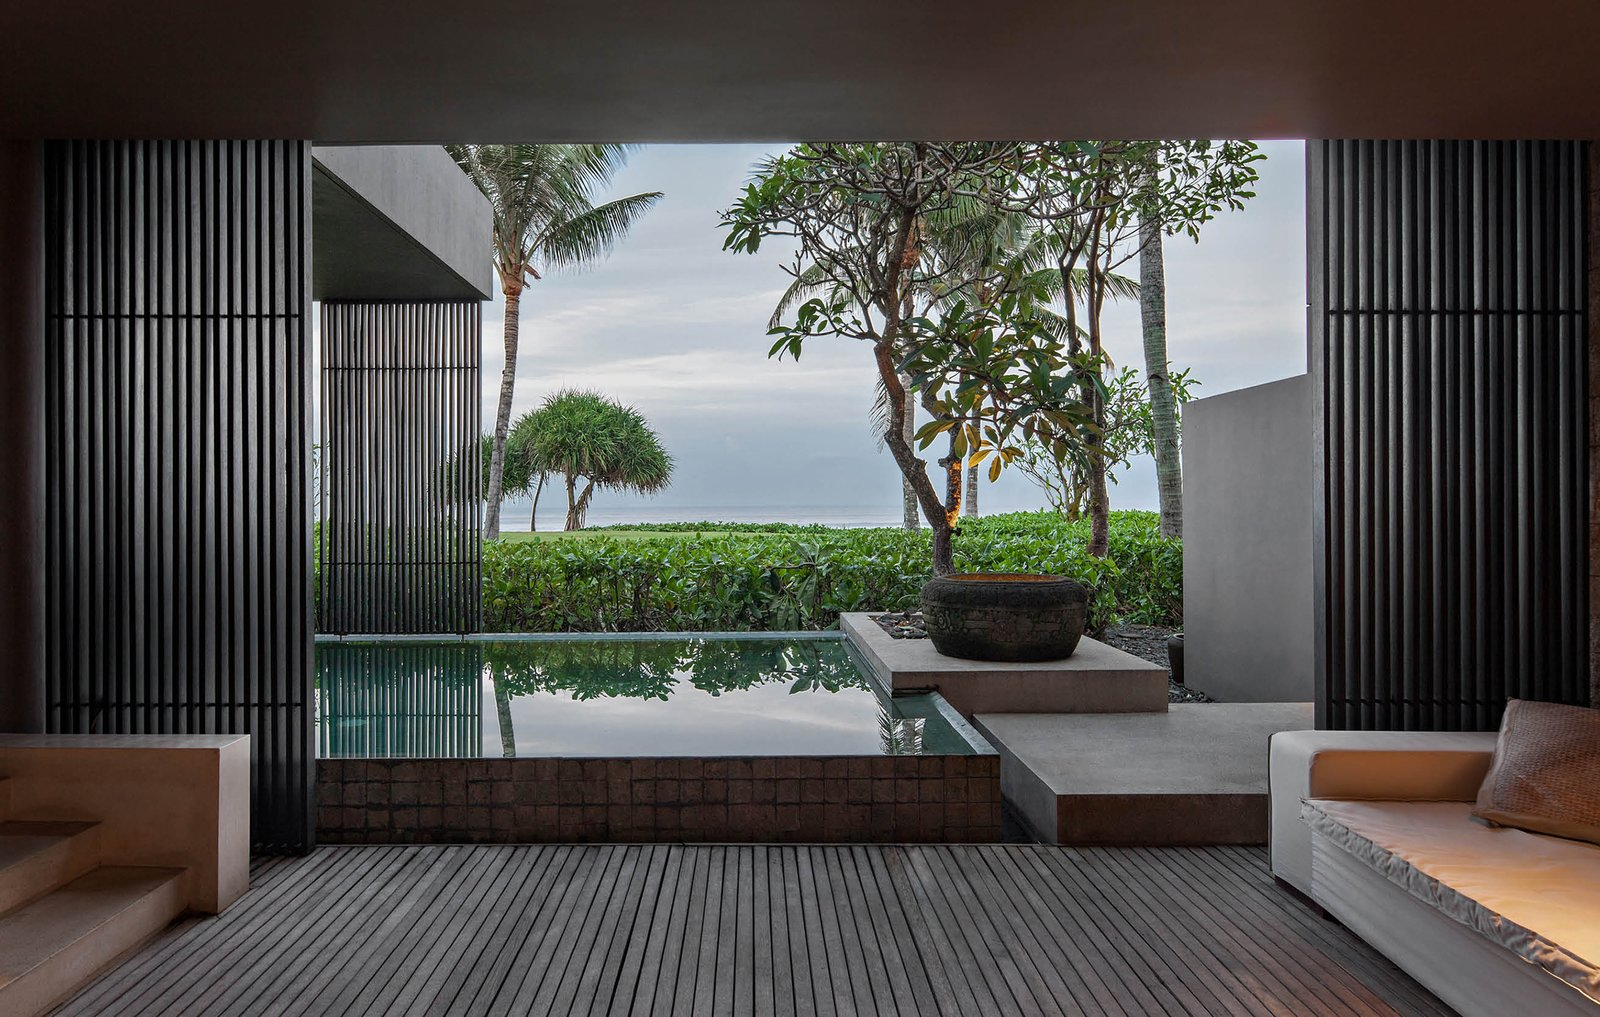 Outdoor, Trees, Infinity Pools, Tubs, Shower, Swimming Pools, Tubs, Shower, Large Pools, Tubs, Shower, Shrubs, Wood Patio, Porch, Deck, and Back Yard  Photo 6 of 9 in A Modern Bali Resort That's Inspired by the Local Landscape and Culture